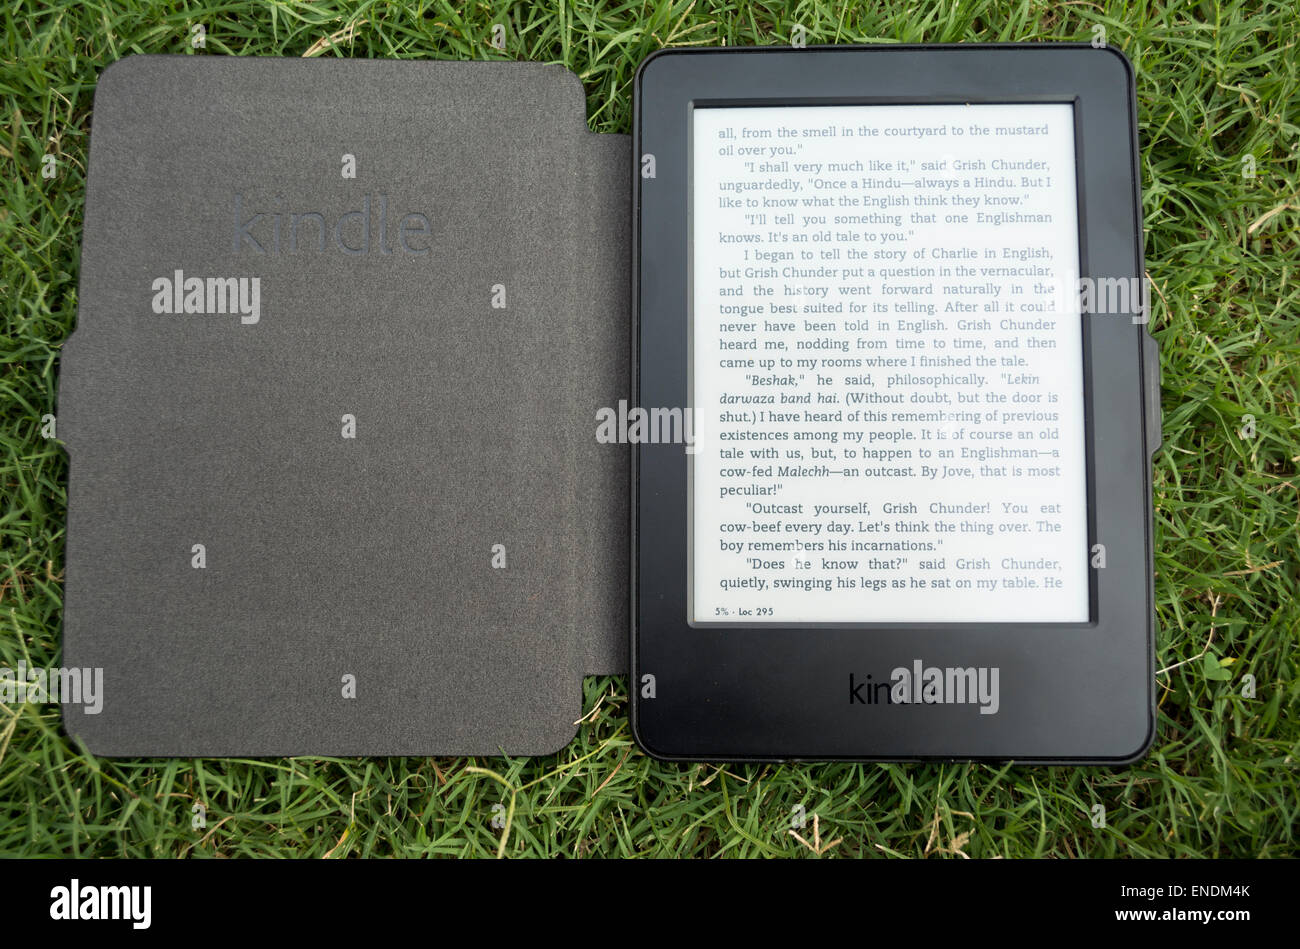 Amazon Kindle e-Book Reader sur l'herbe Photo Stock